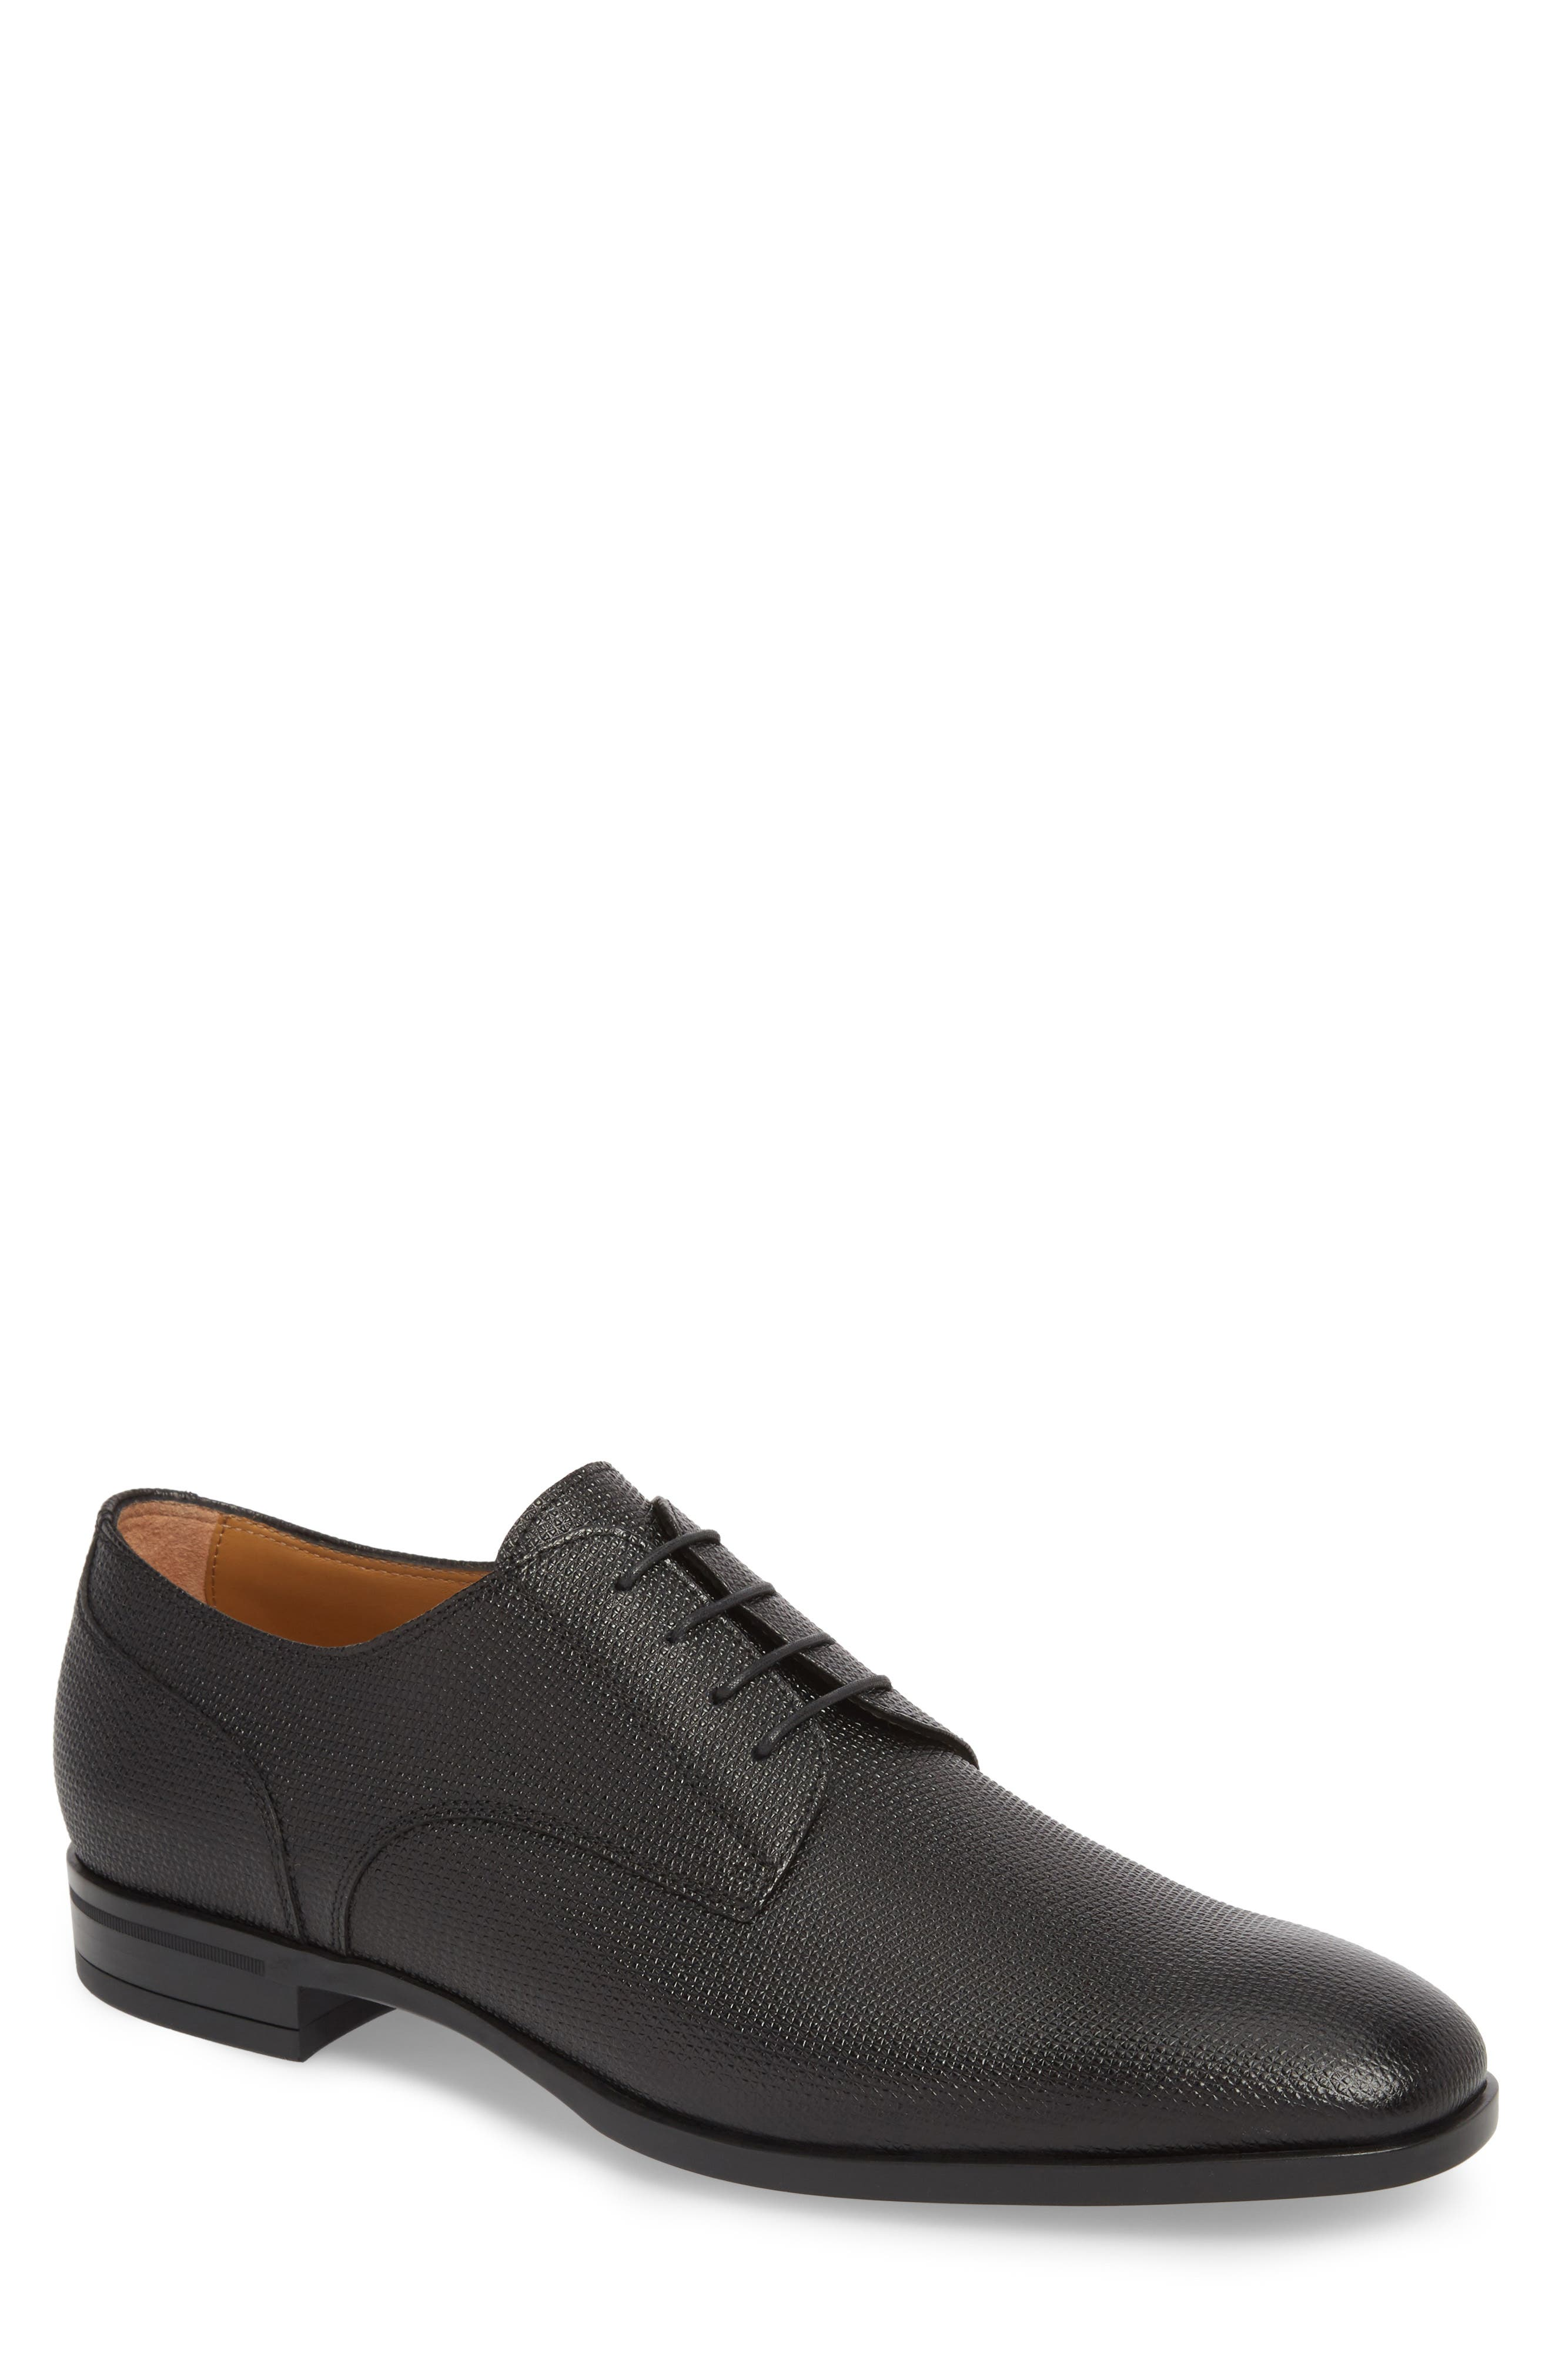 BOSS Shoes Sale \u0026 Clearance | Nordstrom